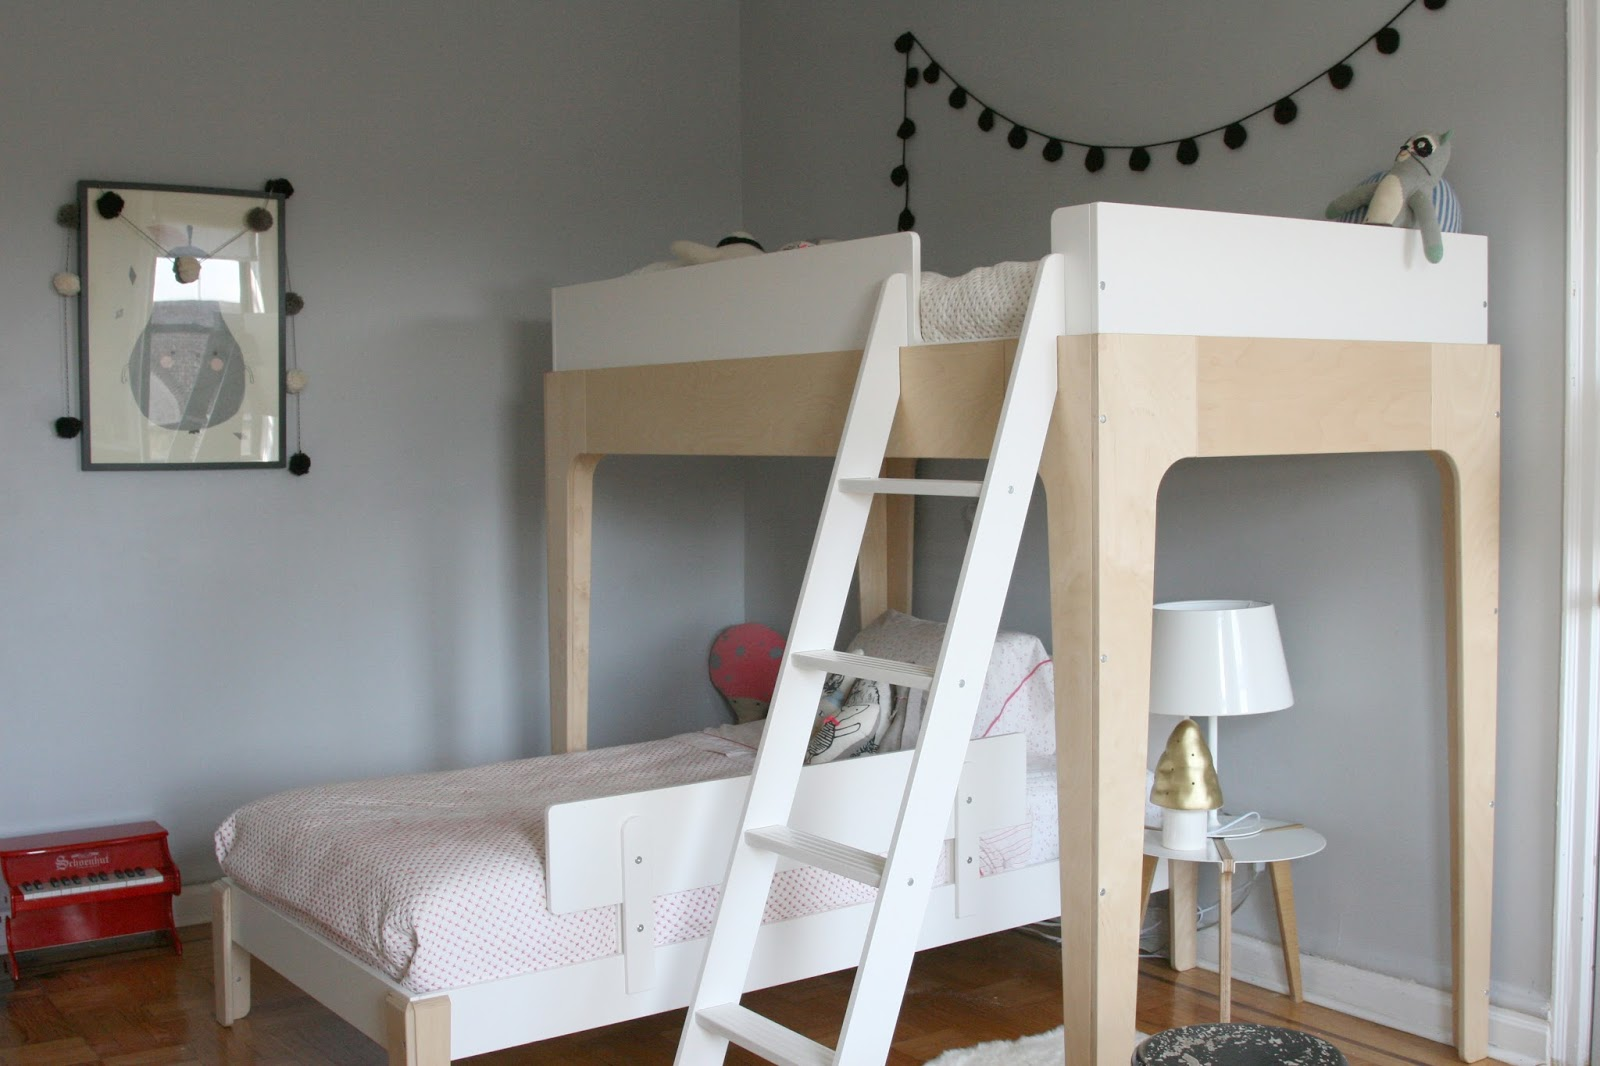 Fabulous Adorn Henry Adela us Kids Room